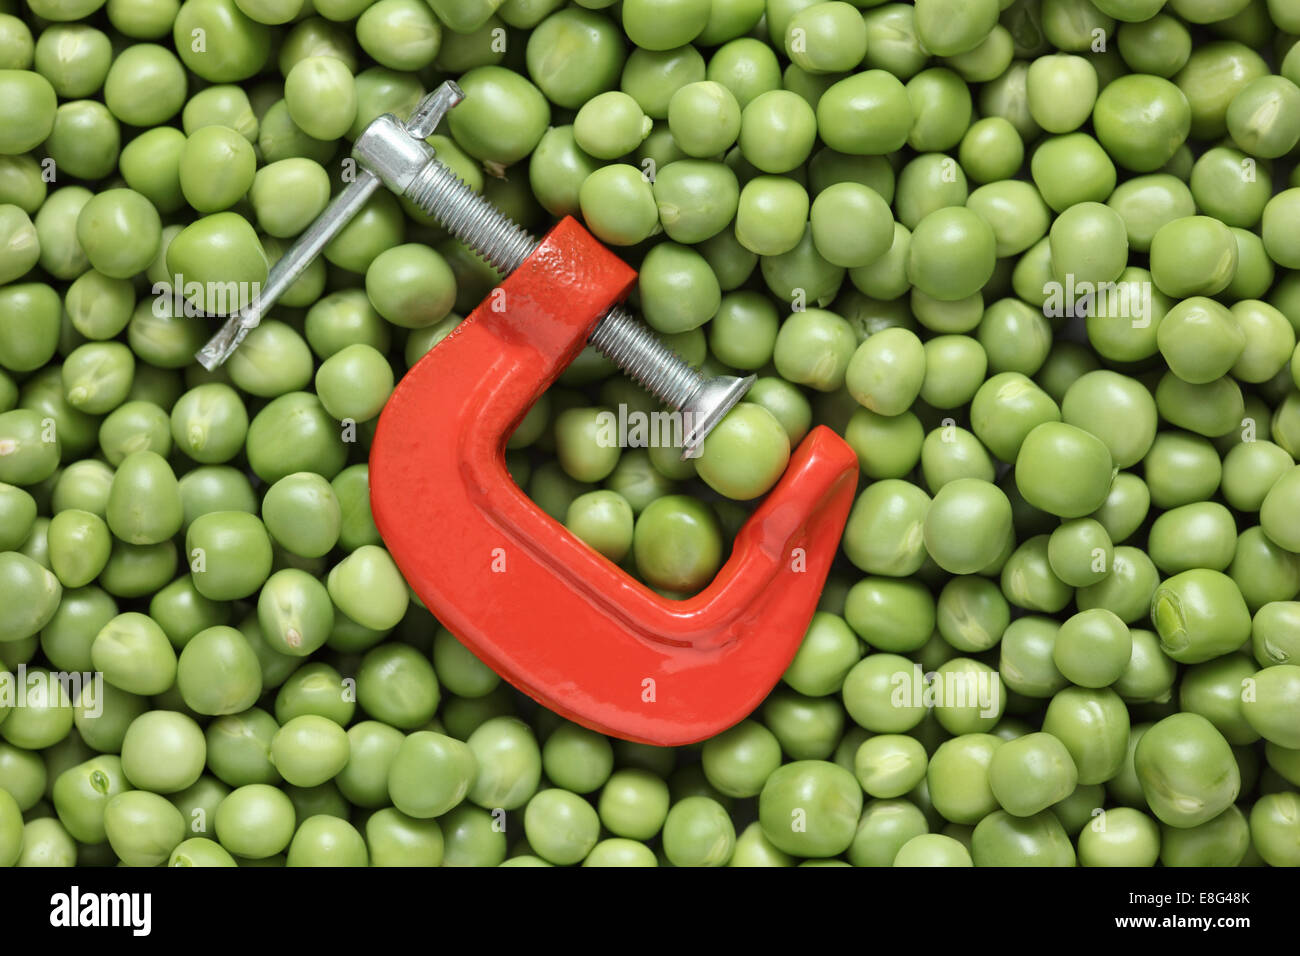 Green pea in a clamp on green peas background. Close-up. - Stock Image